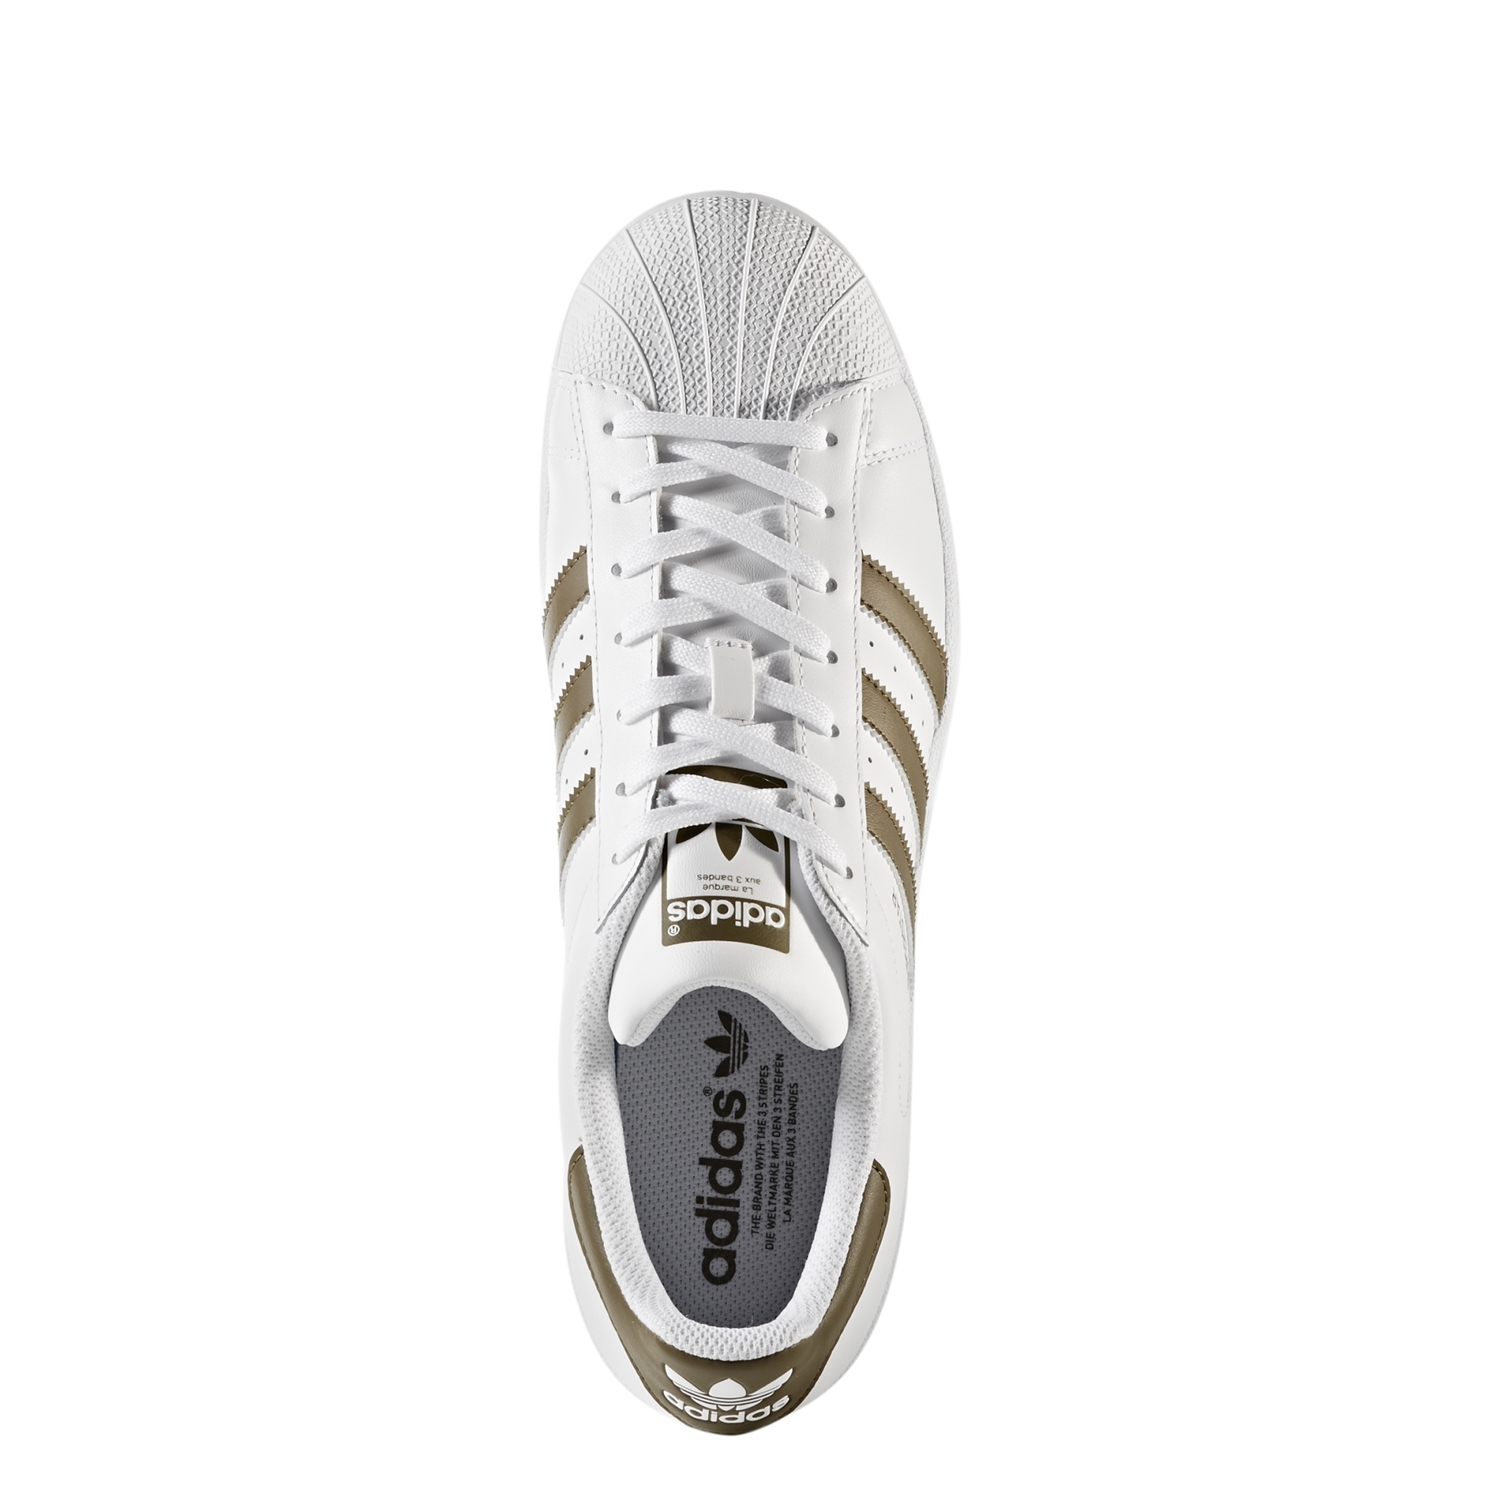 6a26dca1ffd Superstar Trace Adidas Originals Superstar Superstar Originals Trace Adidas  Olive Adidas Olive Originals gEnwq0fAv